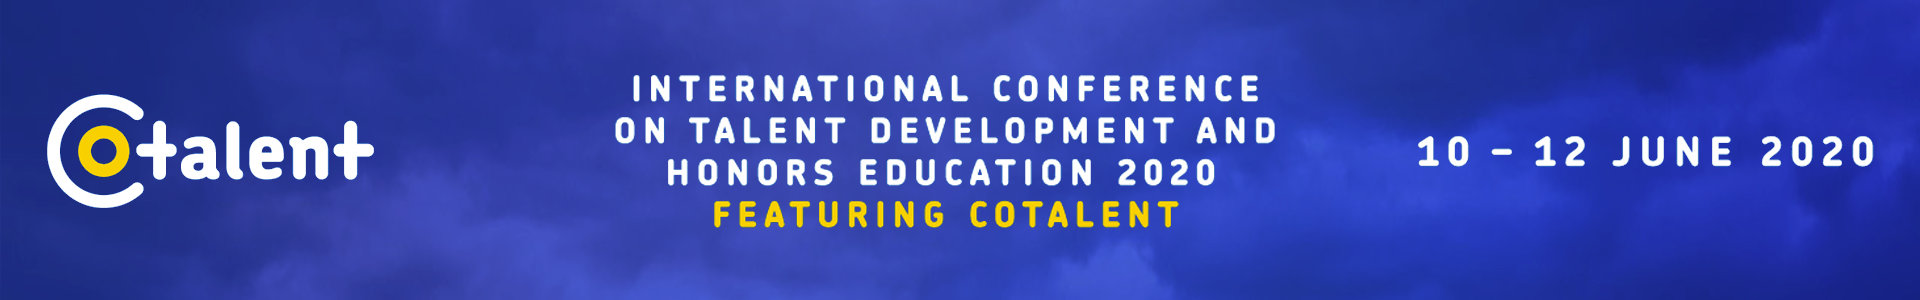 International Conference on Talent Development and Honors Education (Copy)